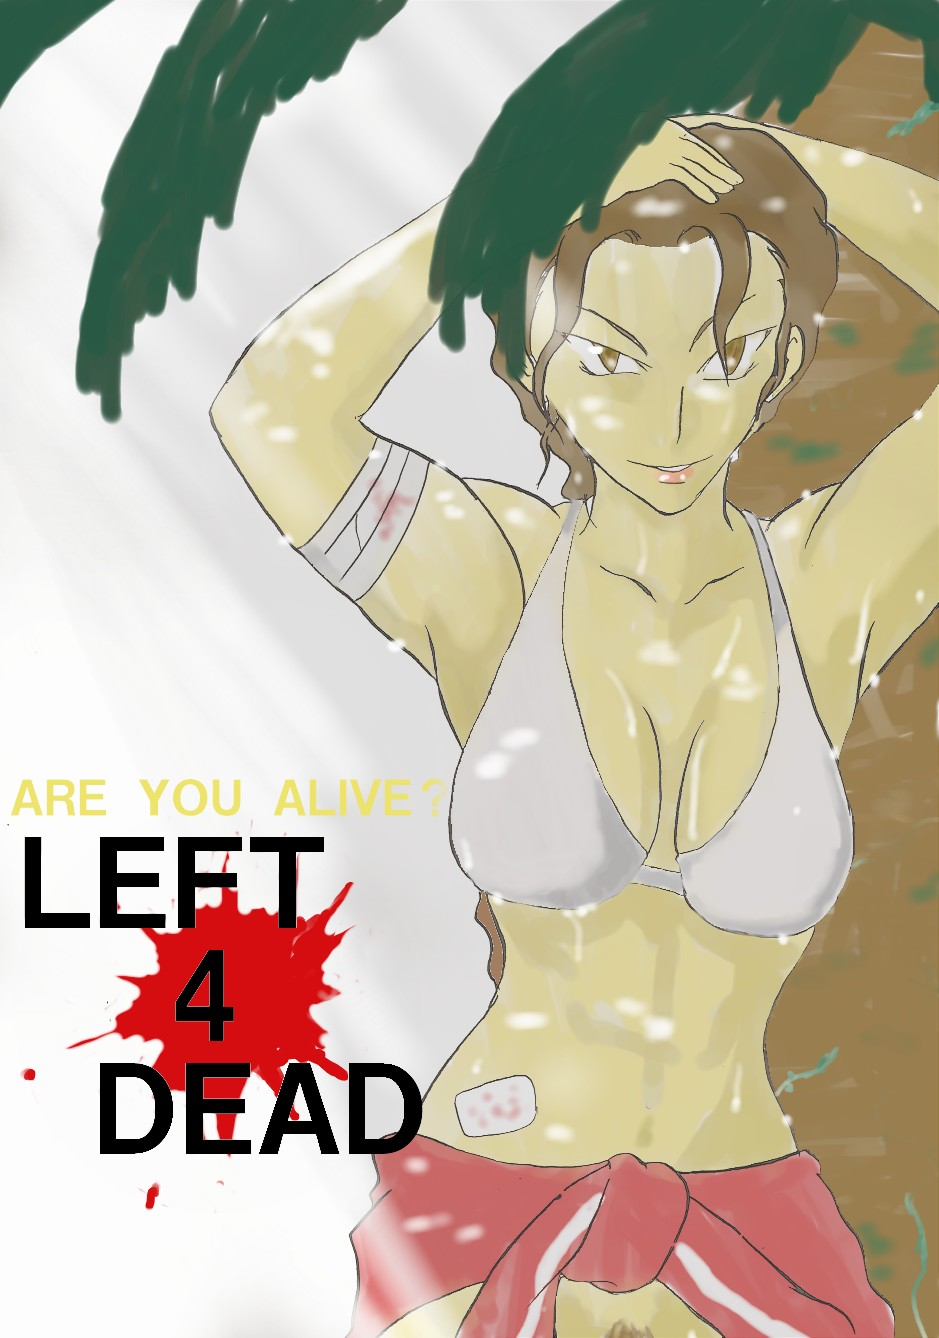 Zoey left 4 dead rule 34